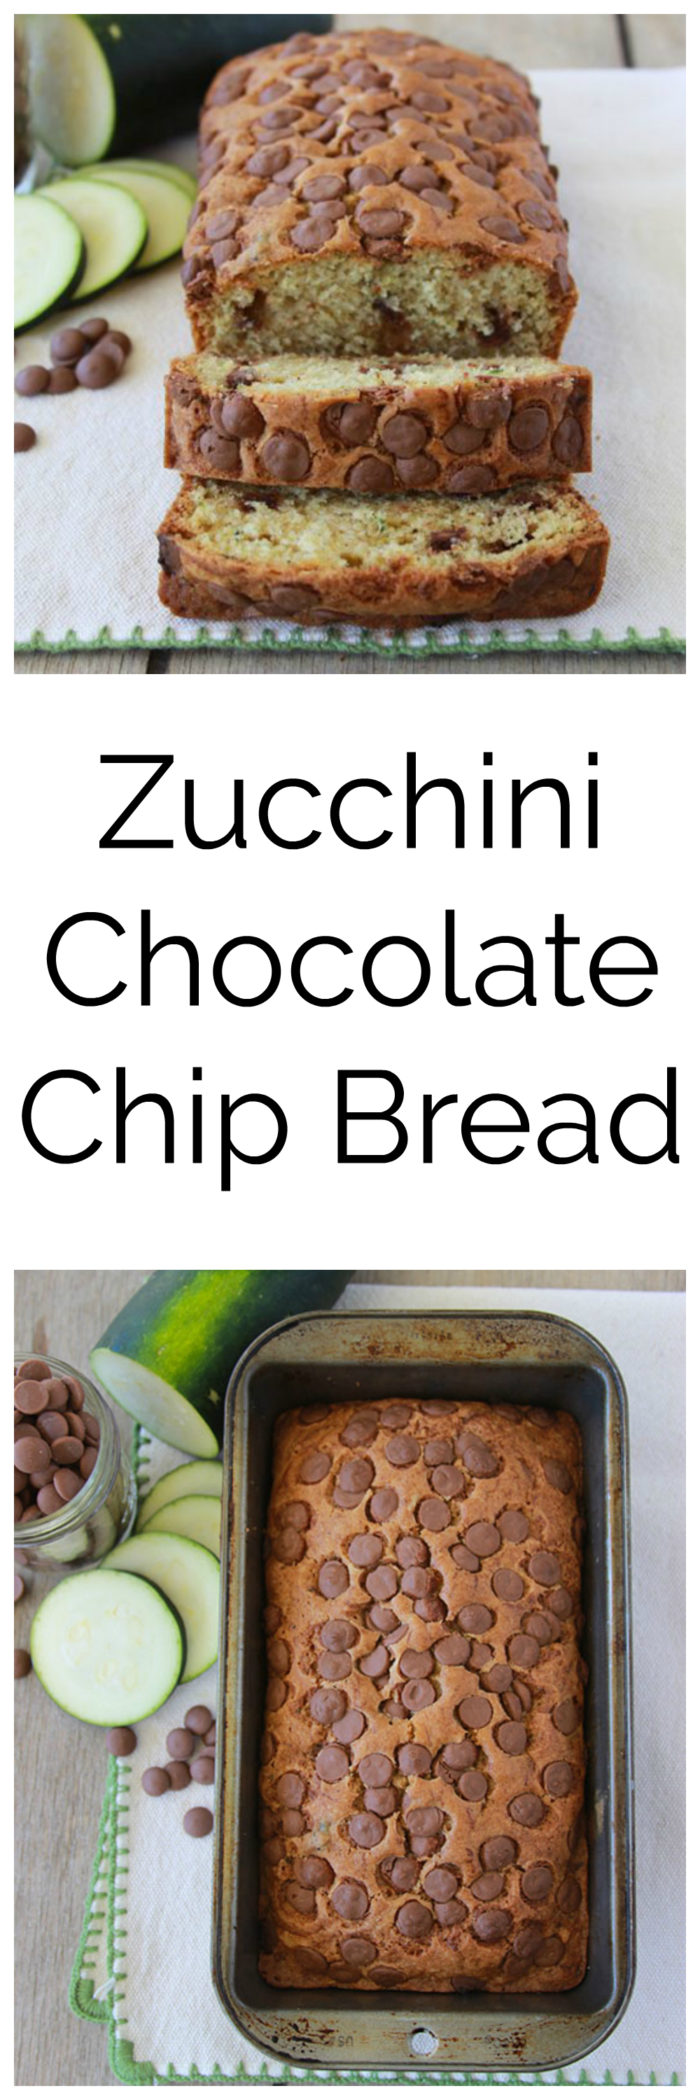 Zucchini Chocolate Chip Bread is a flavorful summer time loaf! www.cookingwithruthie.com